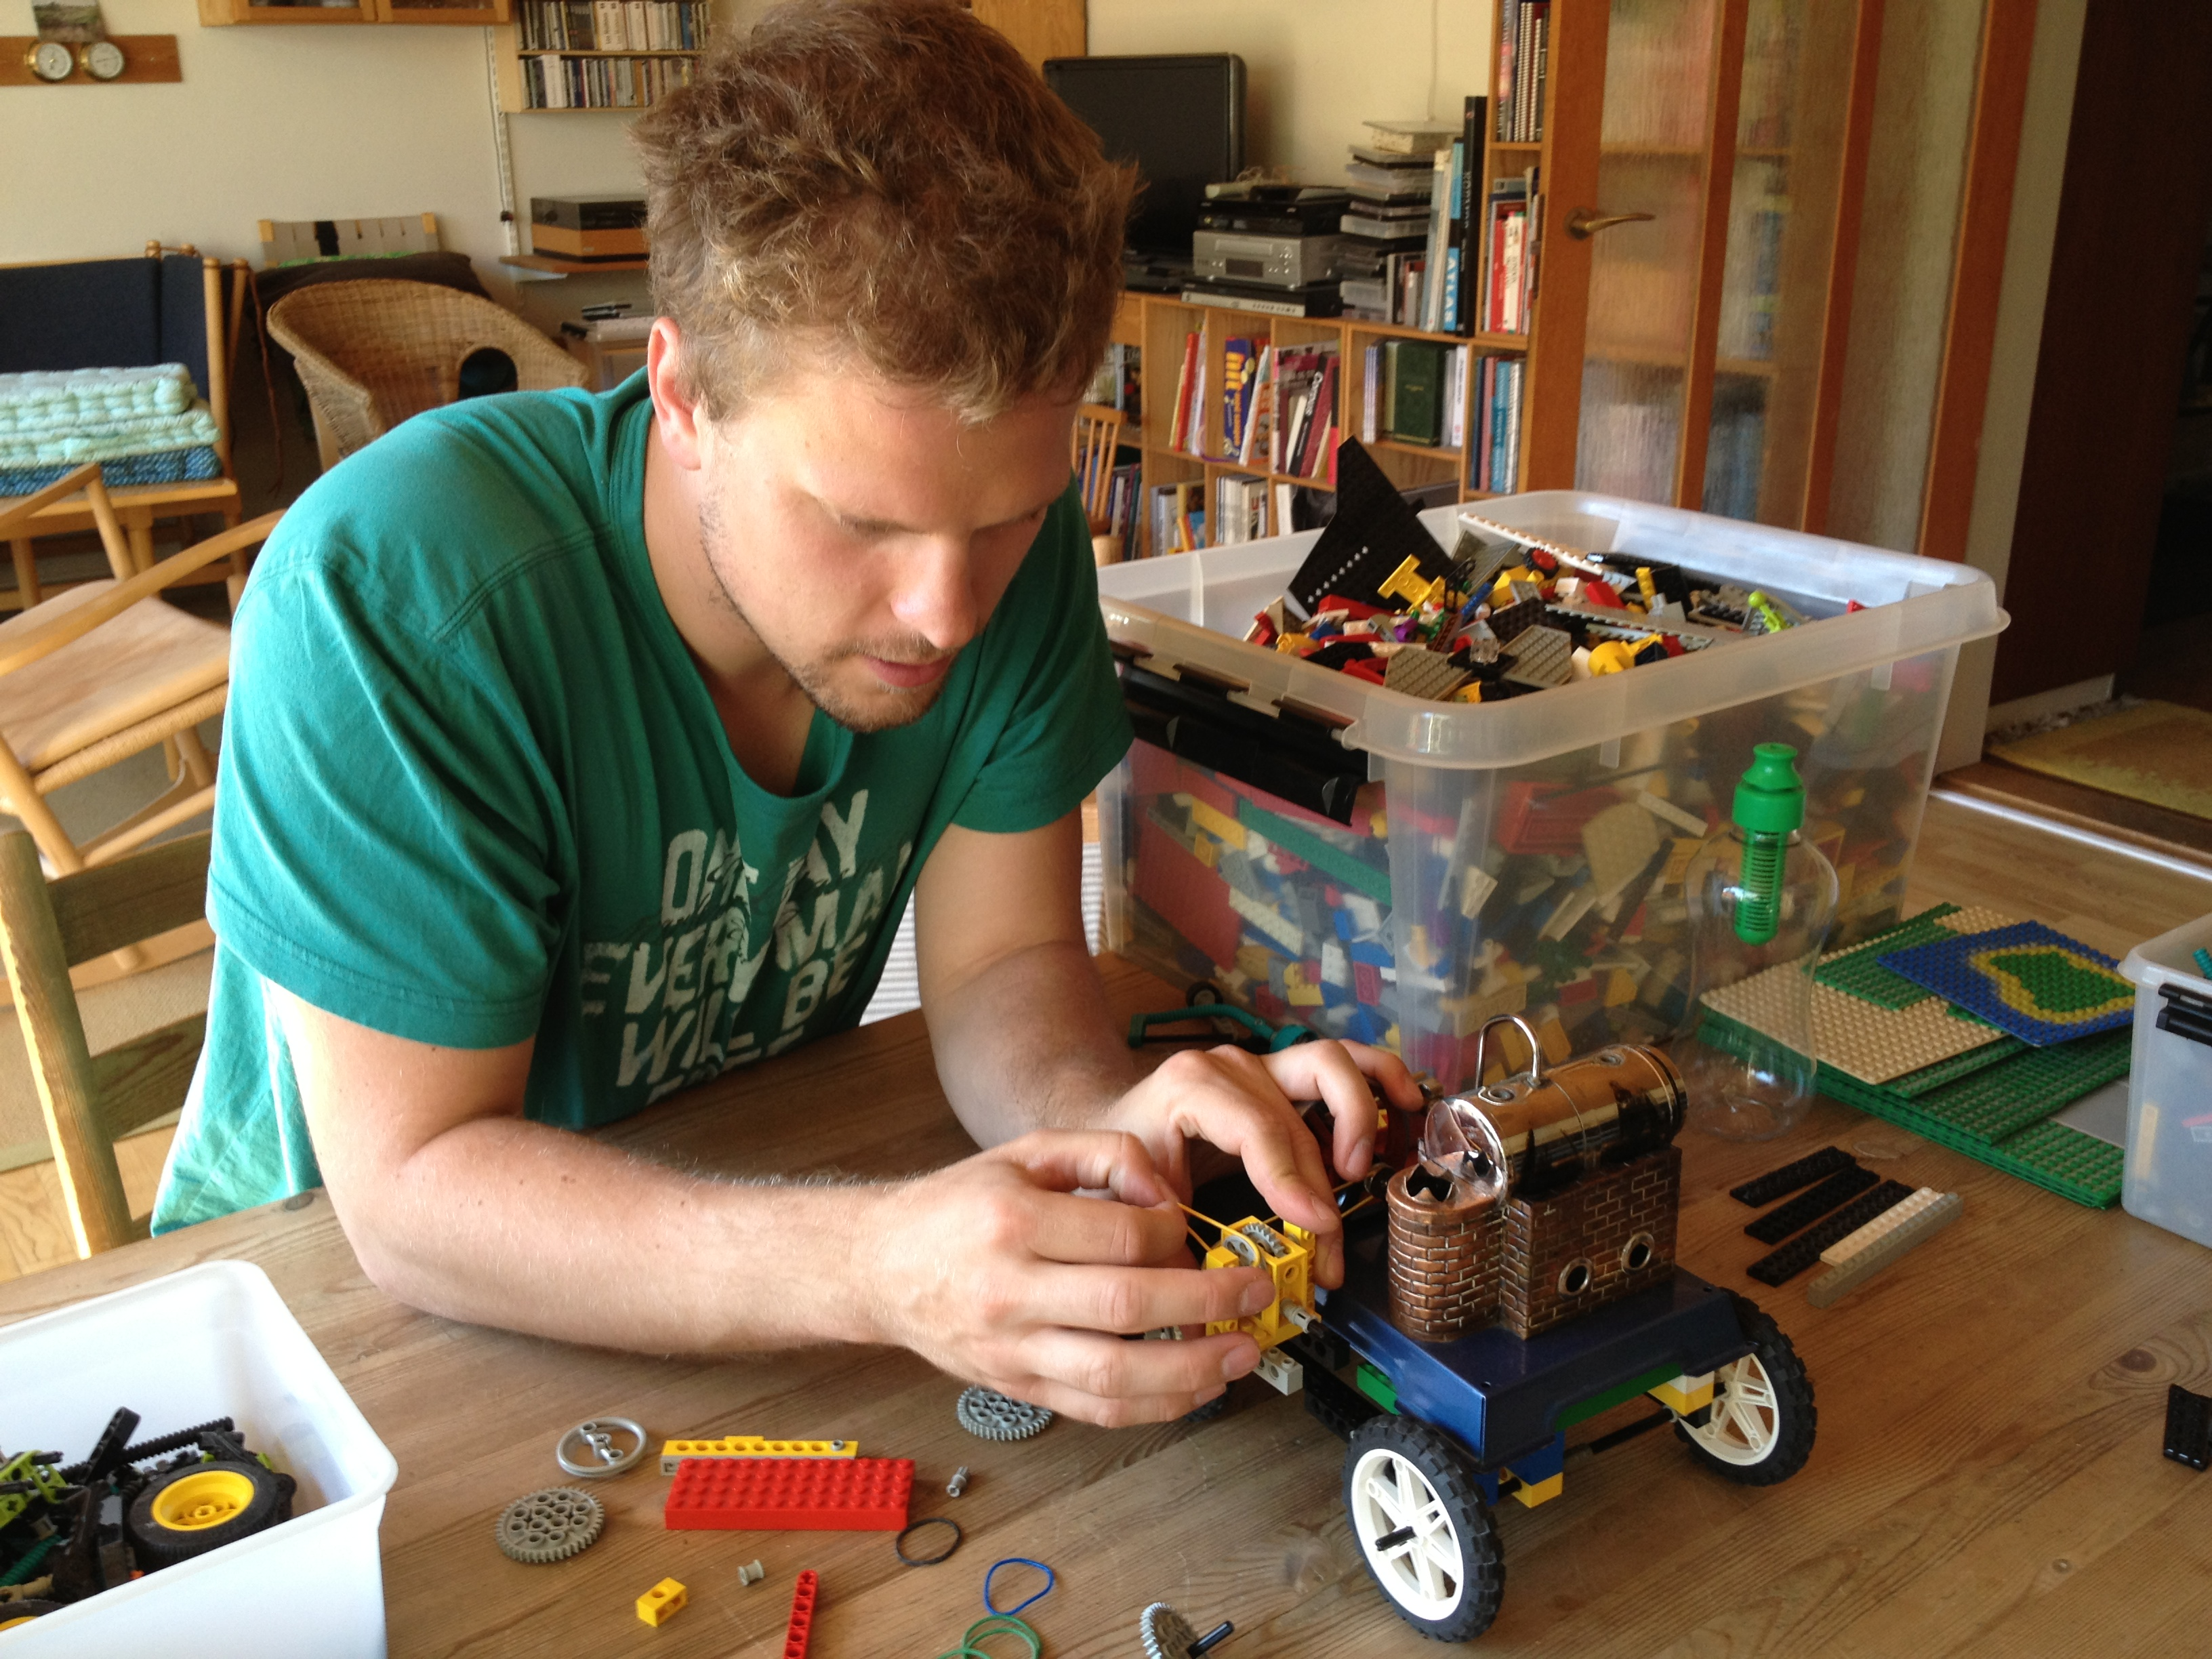 How to build a Steam-powered LEGO car | Constructing Kids